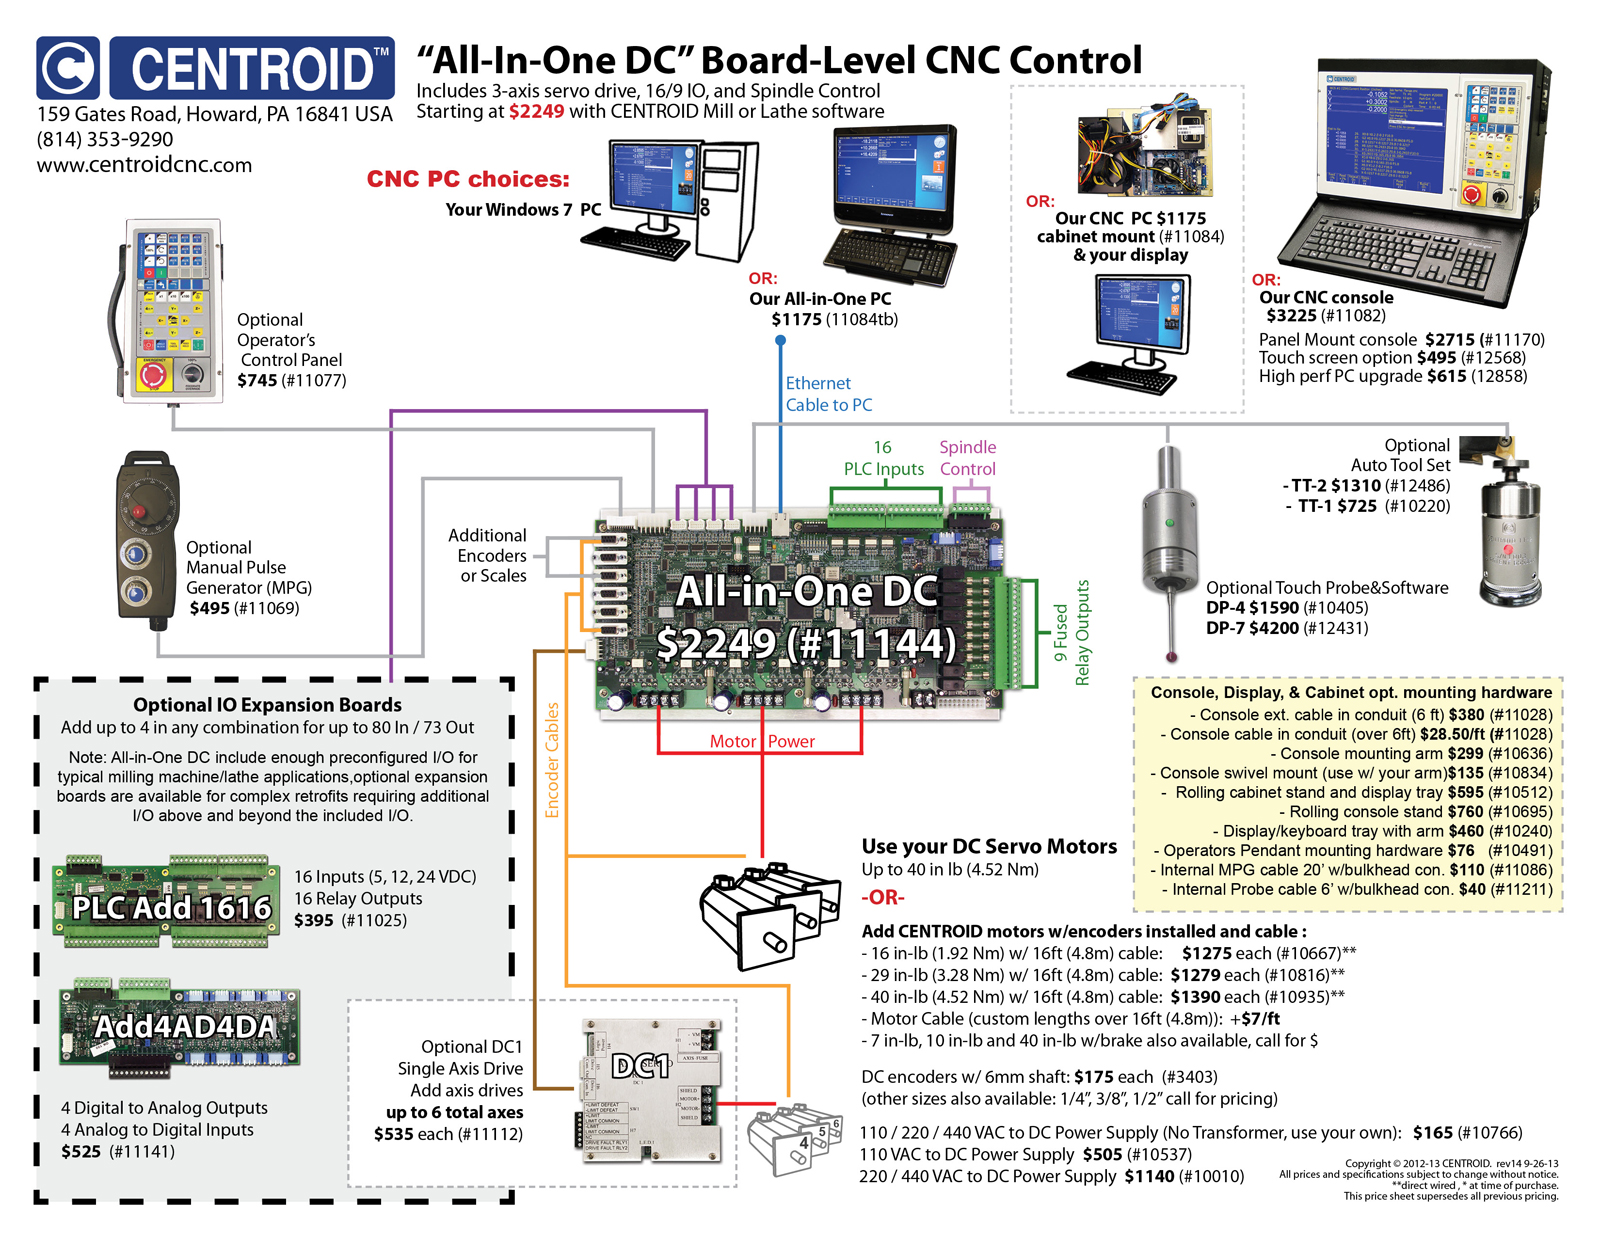 Cnc Servo Motor Wiring Diagram Circuit And Hub Rc Centroid Control Features Usb Port For Storage Device Rh Centroidcnc Com Controller Theory